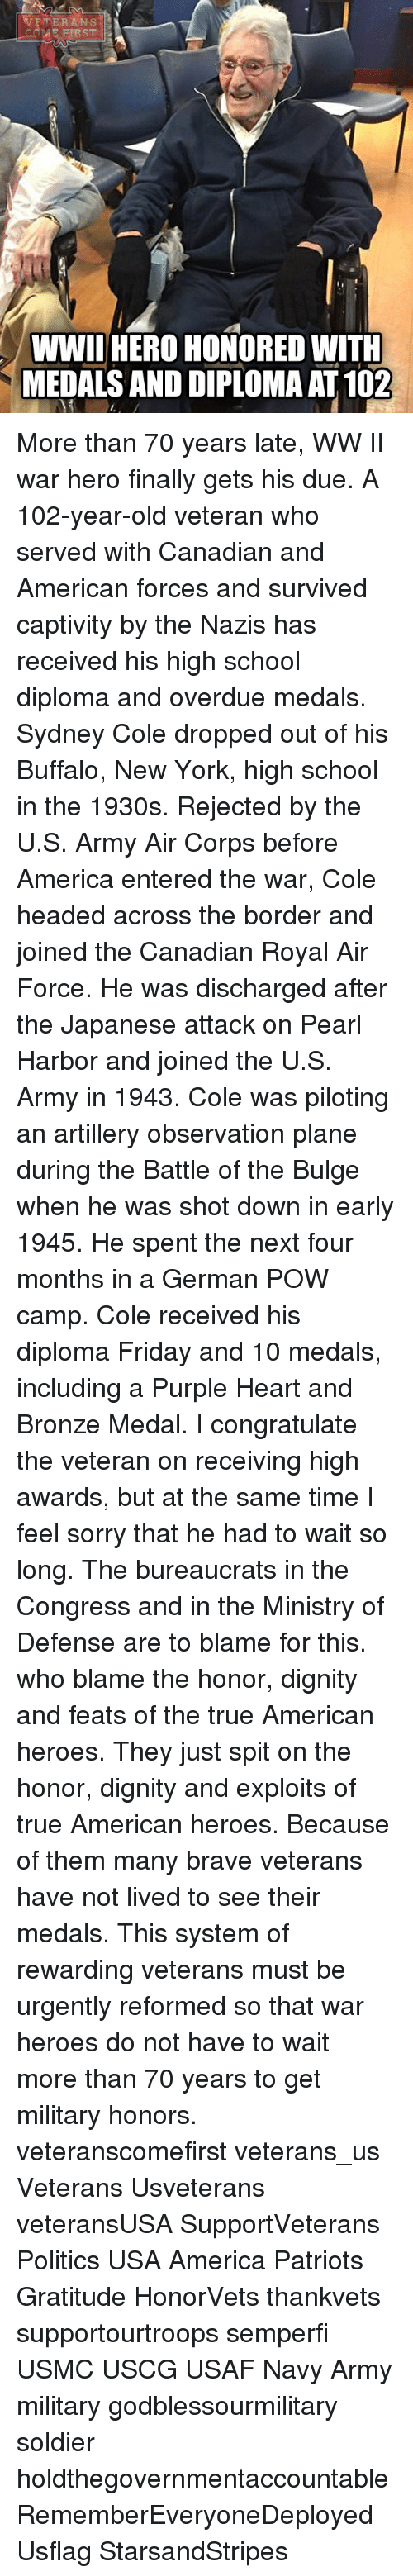 Germanic: TERANS  FIRST  WWII HERO HONORED WITH  MEDALS AND DIPLOMAAT 102 More than 70 years late, WW II war hero finally gets his due. A 102-year-old veteran who served with Canadian and American forces and survived captivity by the Nazis has received his high school diploma and overdue medals. Sydney Cole dropped out of his Buffalo, New York, high school in the 1930s. Rejected by the U.S. Army Air Corps before America entered the war, Cole headed across the border and joined the Canadian Royal Air Force. He was discharged after the Japanese attack on Pearl Harbor and joined the U.S. Army in 1943. Cole was piloting an artillery observation plane during the Battle of the Bulge when he was shot down in early 1945. He spent the next four months in a German POW camp. Cole received his diploma Friday and 10 medals, including a Purple Heart and Bronze Medal. I congratulate the veteran on receiving high awards, but at the same time I feel sorry that he had to wait so long. The bureaucrats in the Congress and in the Ministry of Defense are to blame for this. who blame the honor, dignity and feats of the true American heroes. They just spit on the honor, dignity and exploits of true American heroes. Because of them many brave veterans have not lived to see their medals. This system of rewarding veterans must be urgently reformed so that war heroes do not have to wait more than 70 years to get military honors. veteranscomefirst veterans_us Veterans Usveterans veteransUSA SupportVeterans Politics USA America Patriots Gratitude HonorVets thankvets supportourtroops semperfi USMC USCG USAF Navy Army military godblessourmilitary soldier holdthegovernmentaccountable RememberEveryoneDeployed Usflag StarsandStripes